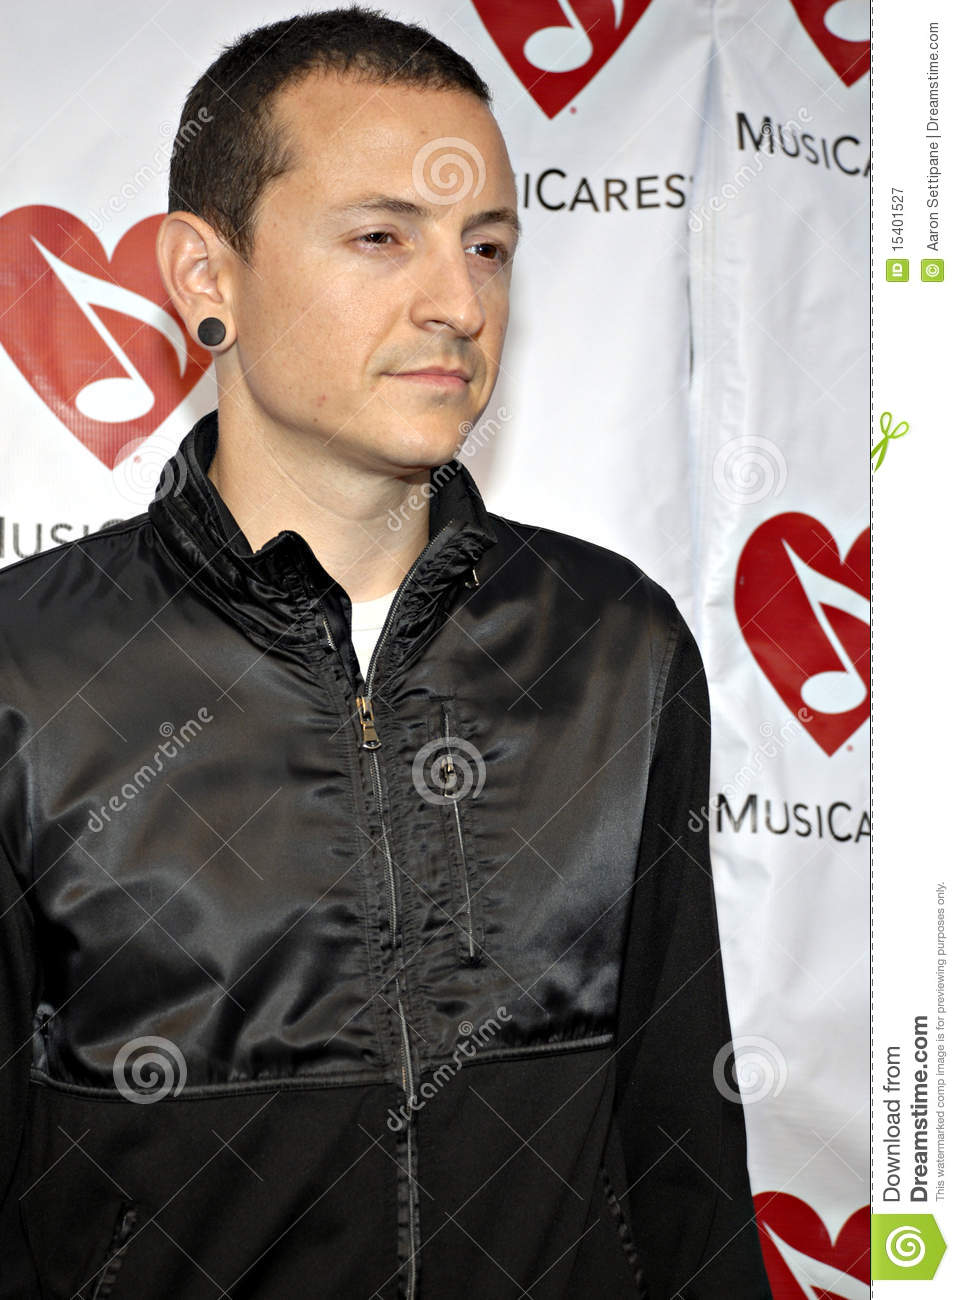 Chester Bennington on the red carpet.